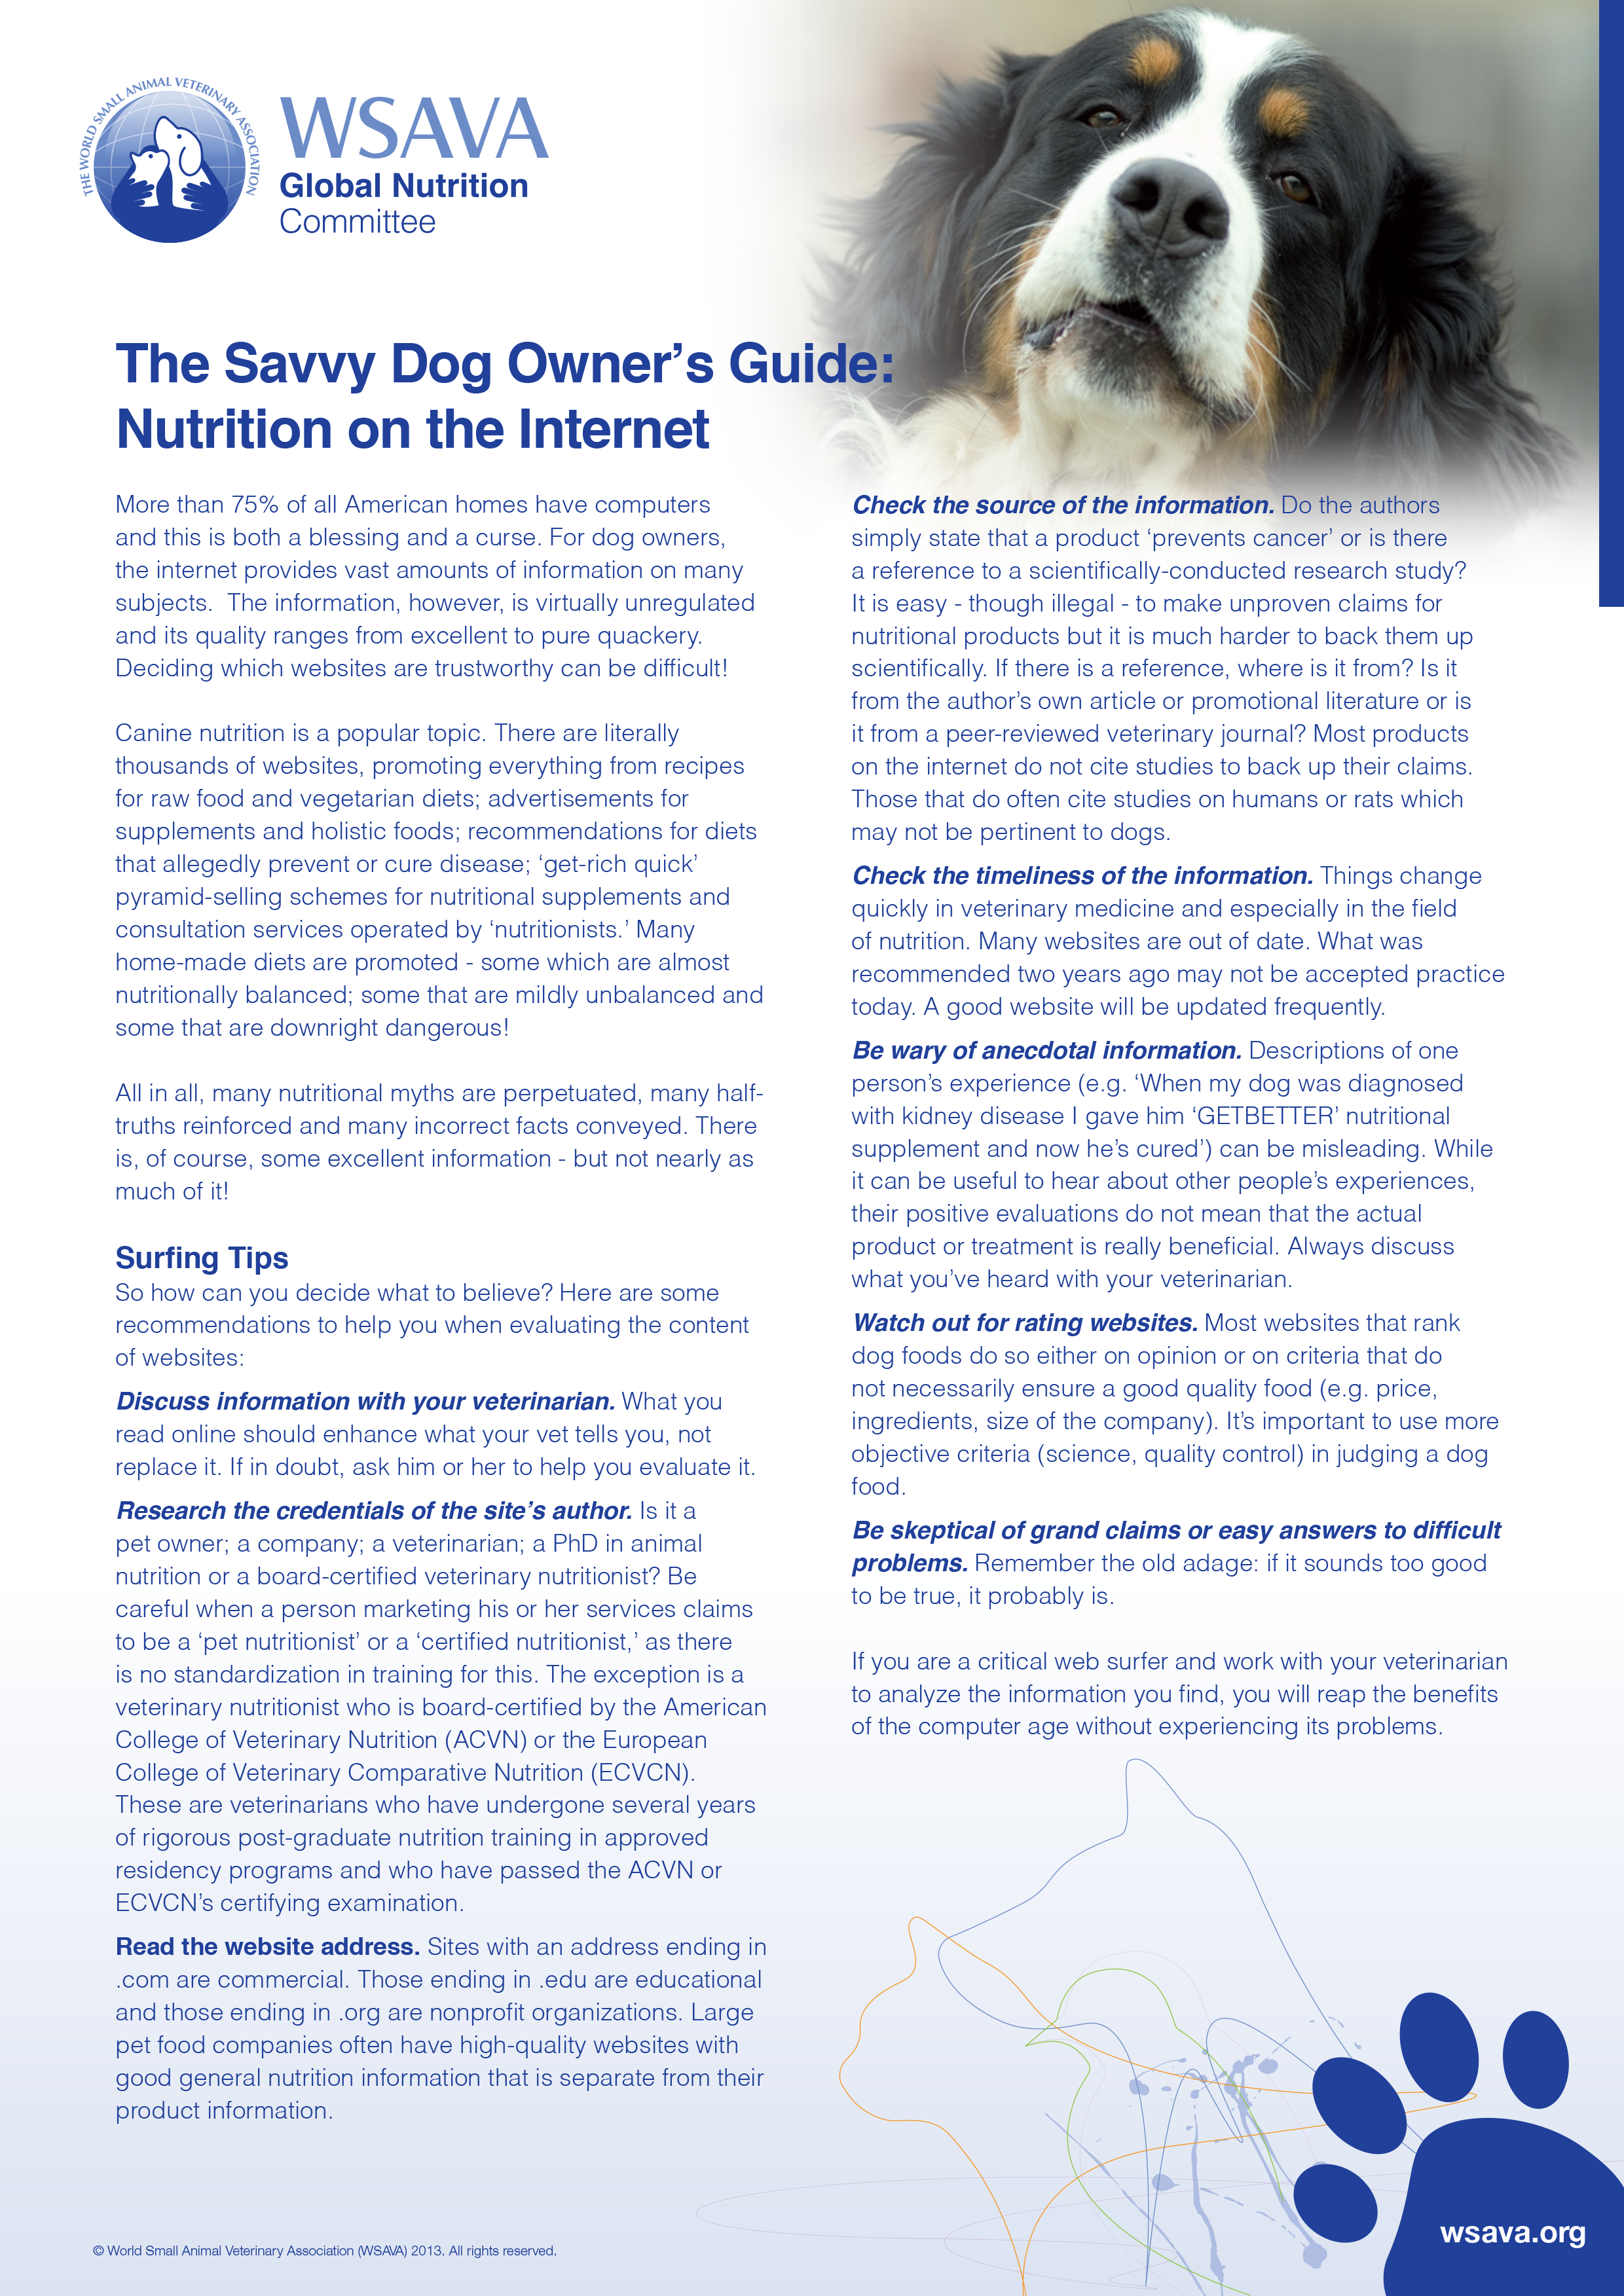 The-Savvy-Dog-Owner-s-Guide-to-Nutrition-on-the-Internet Page1